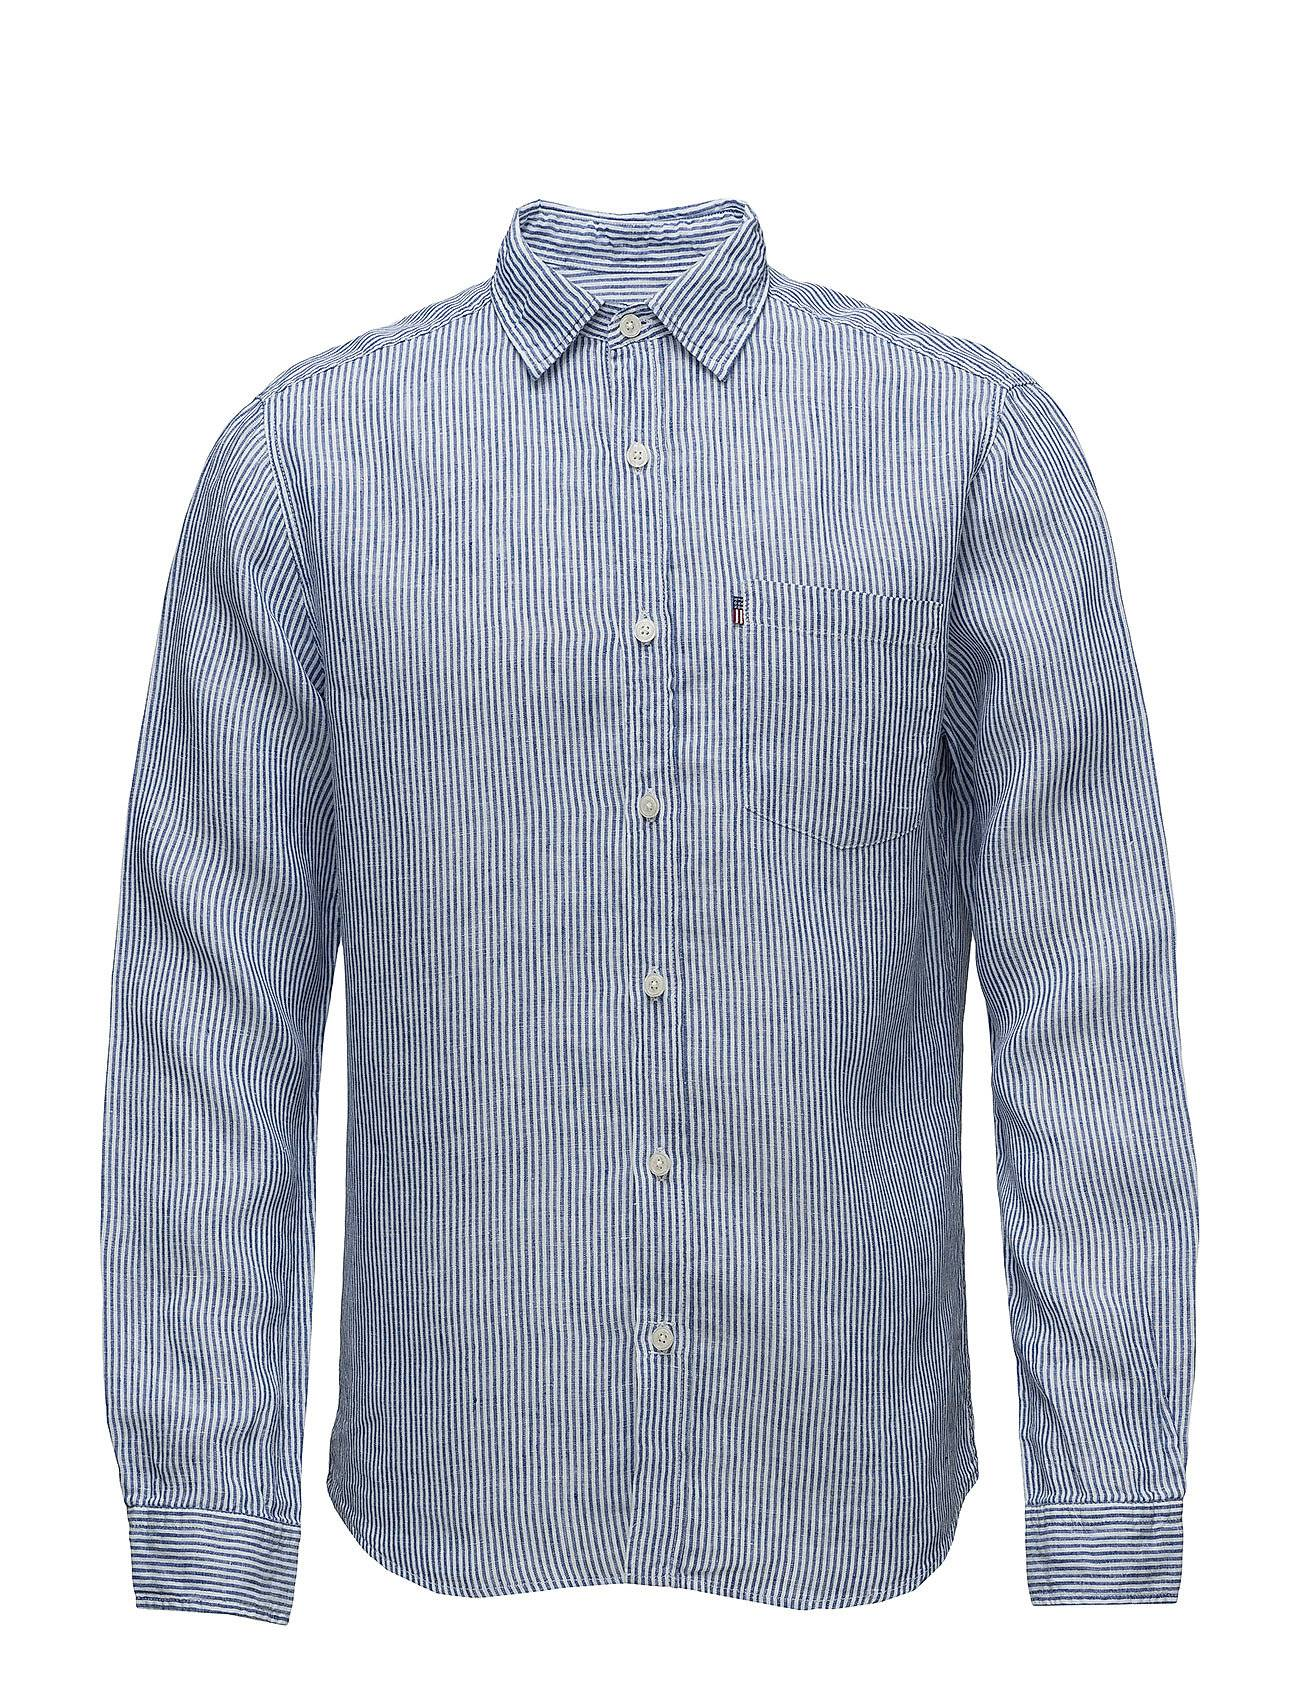 Lexington Clothing Ryan Linen Shirt